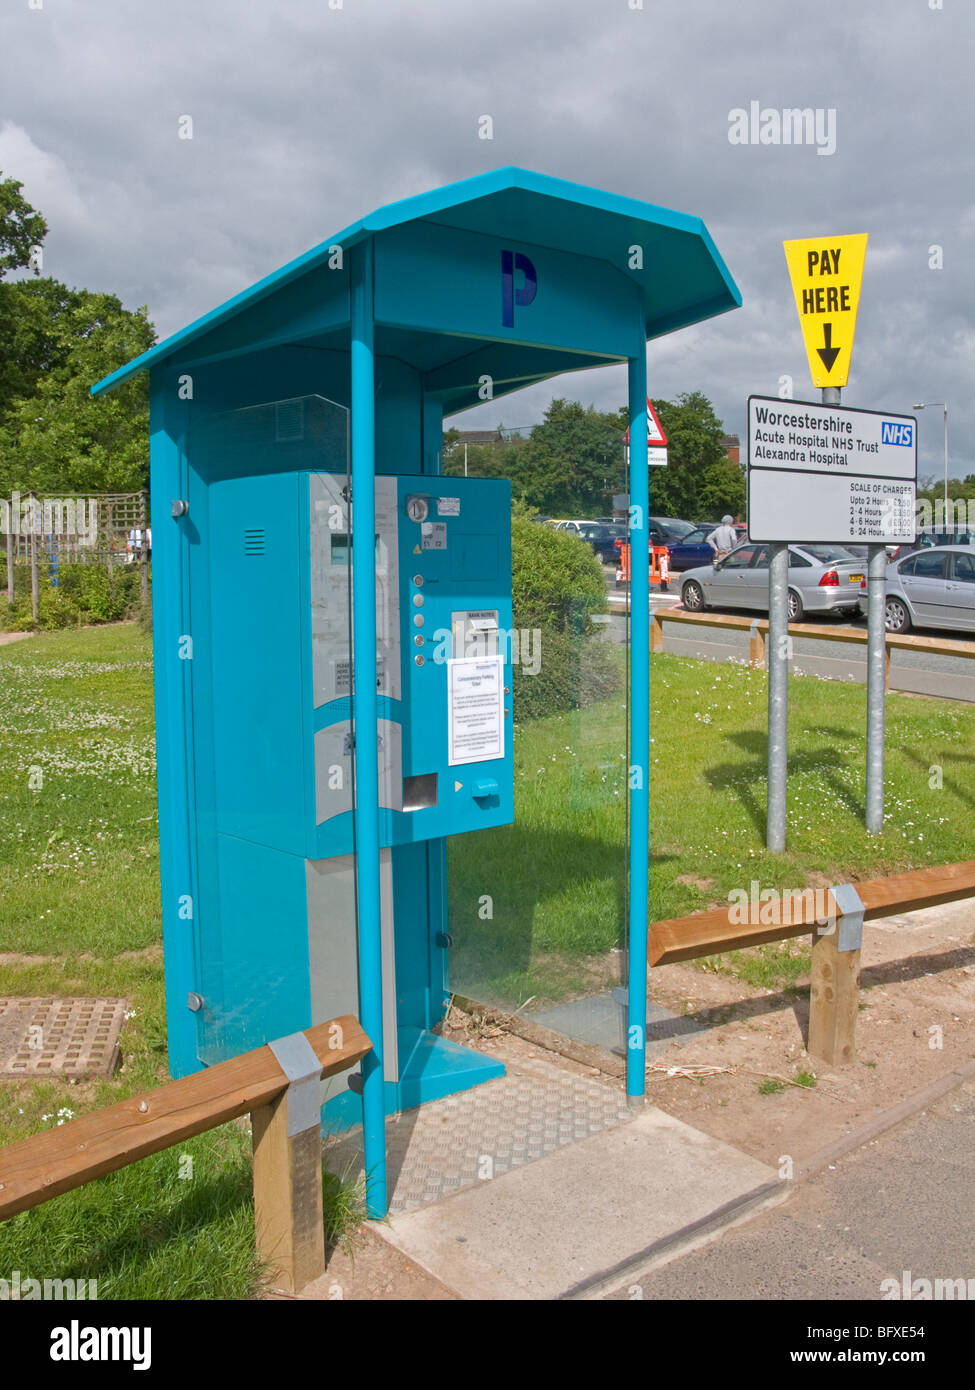 Car parking payment station and charges in 2009 at the Alexandra Hospital, Redditch, Worcestershire, Engalsnd - Stock Image